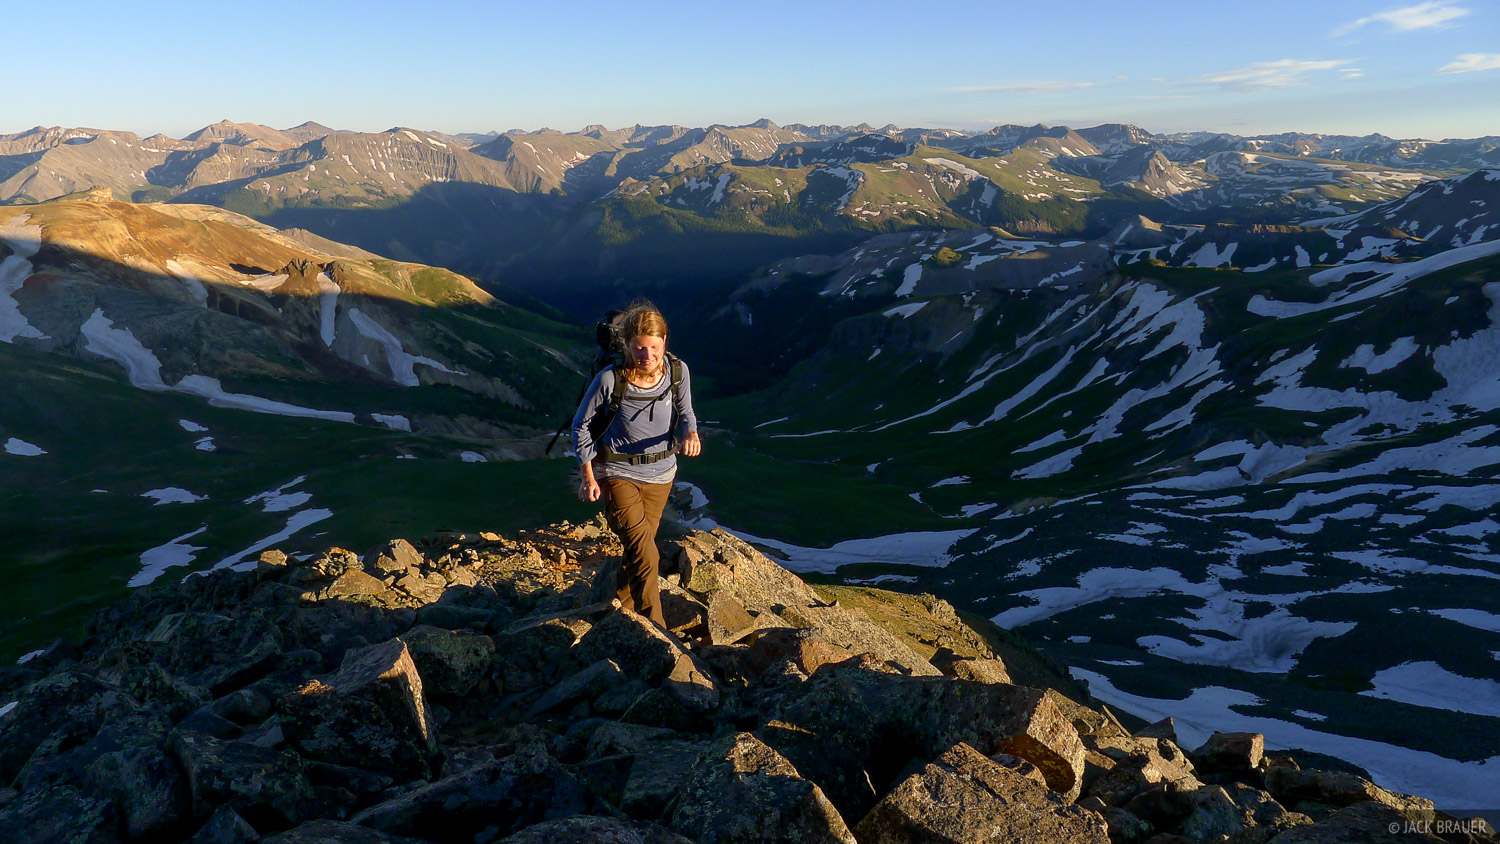 Hiking up Matterhorn Peak in the late afternoon to watch the sunset and moonrise.